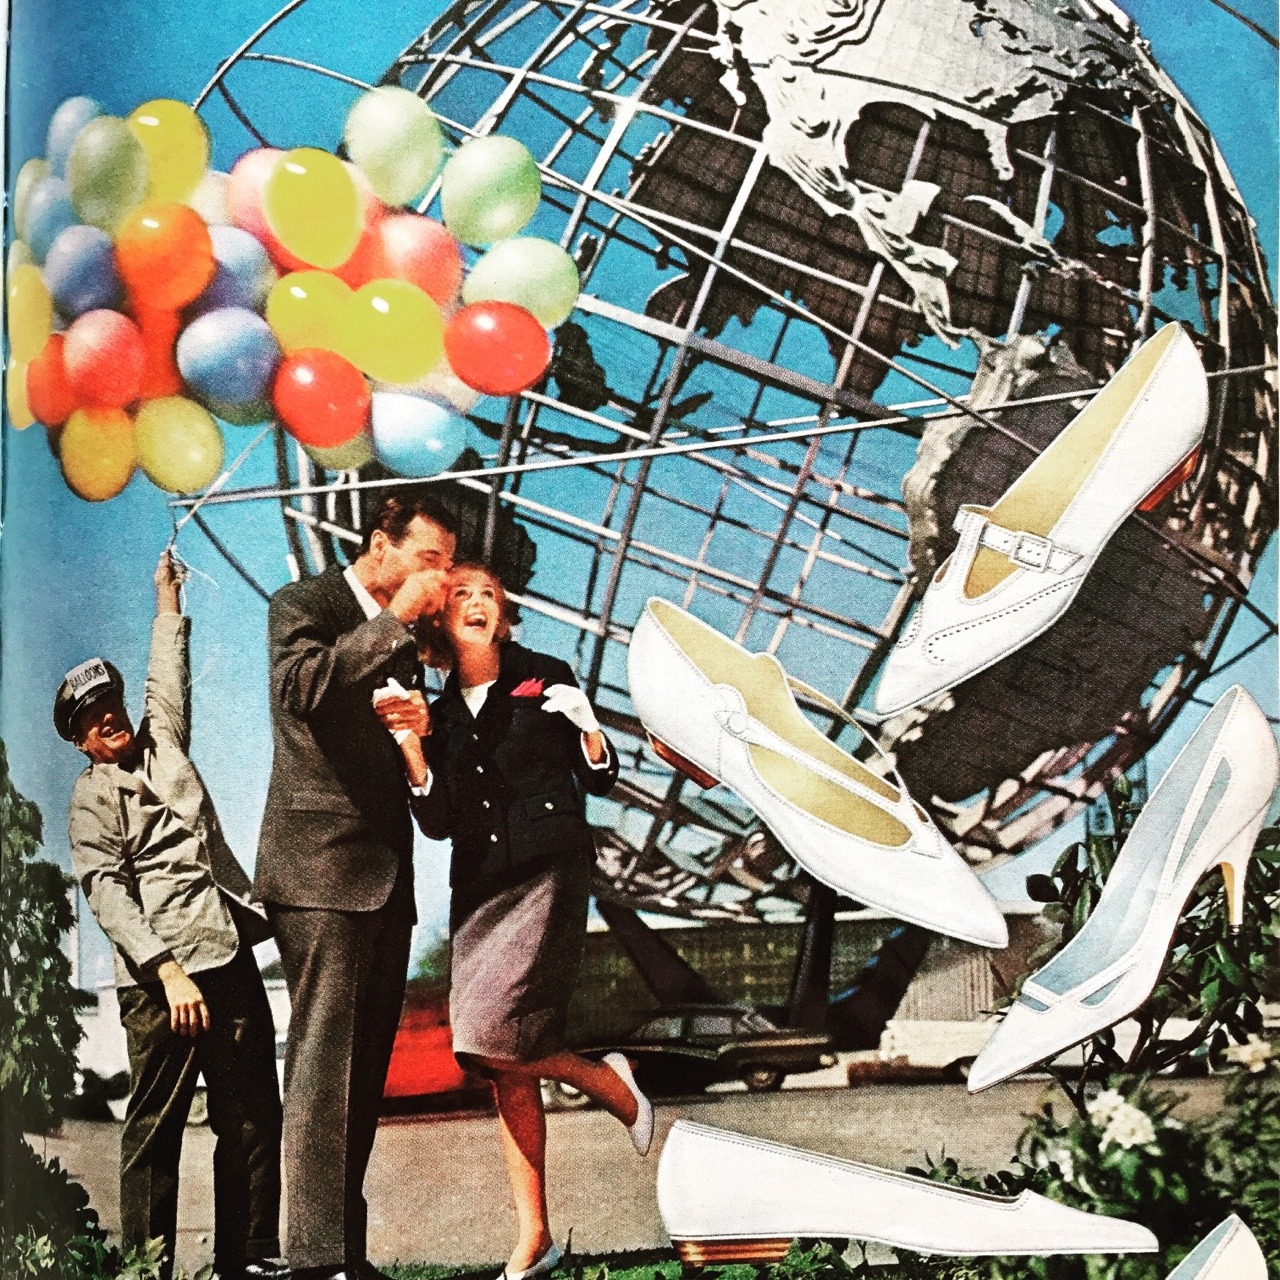 Flings shoes.  Mademoiselle. June 1964.  I'm a New York native, specifically from Queens, so of course I fell in love with this'64 World's Fair era ad featuring the iconic Unisphere. It was commissioned to celebrate the beginning of the space age and became a symbol of unity. Also, Queens is considered to be the most ethnically diverse county in the world and there are approximately 800 languages spoken in the borough.